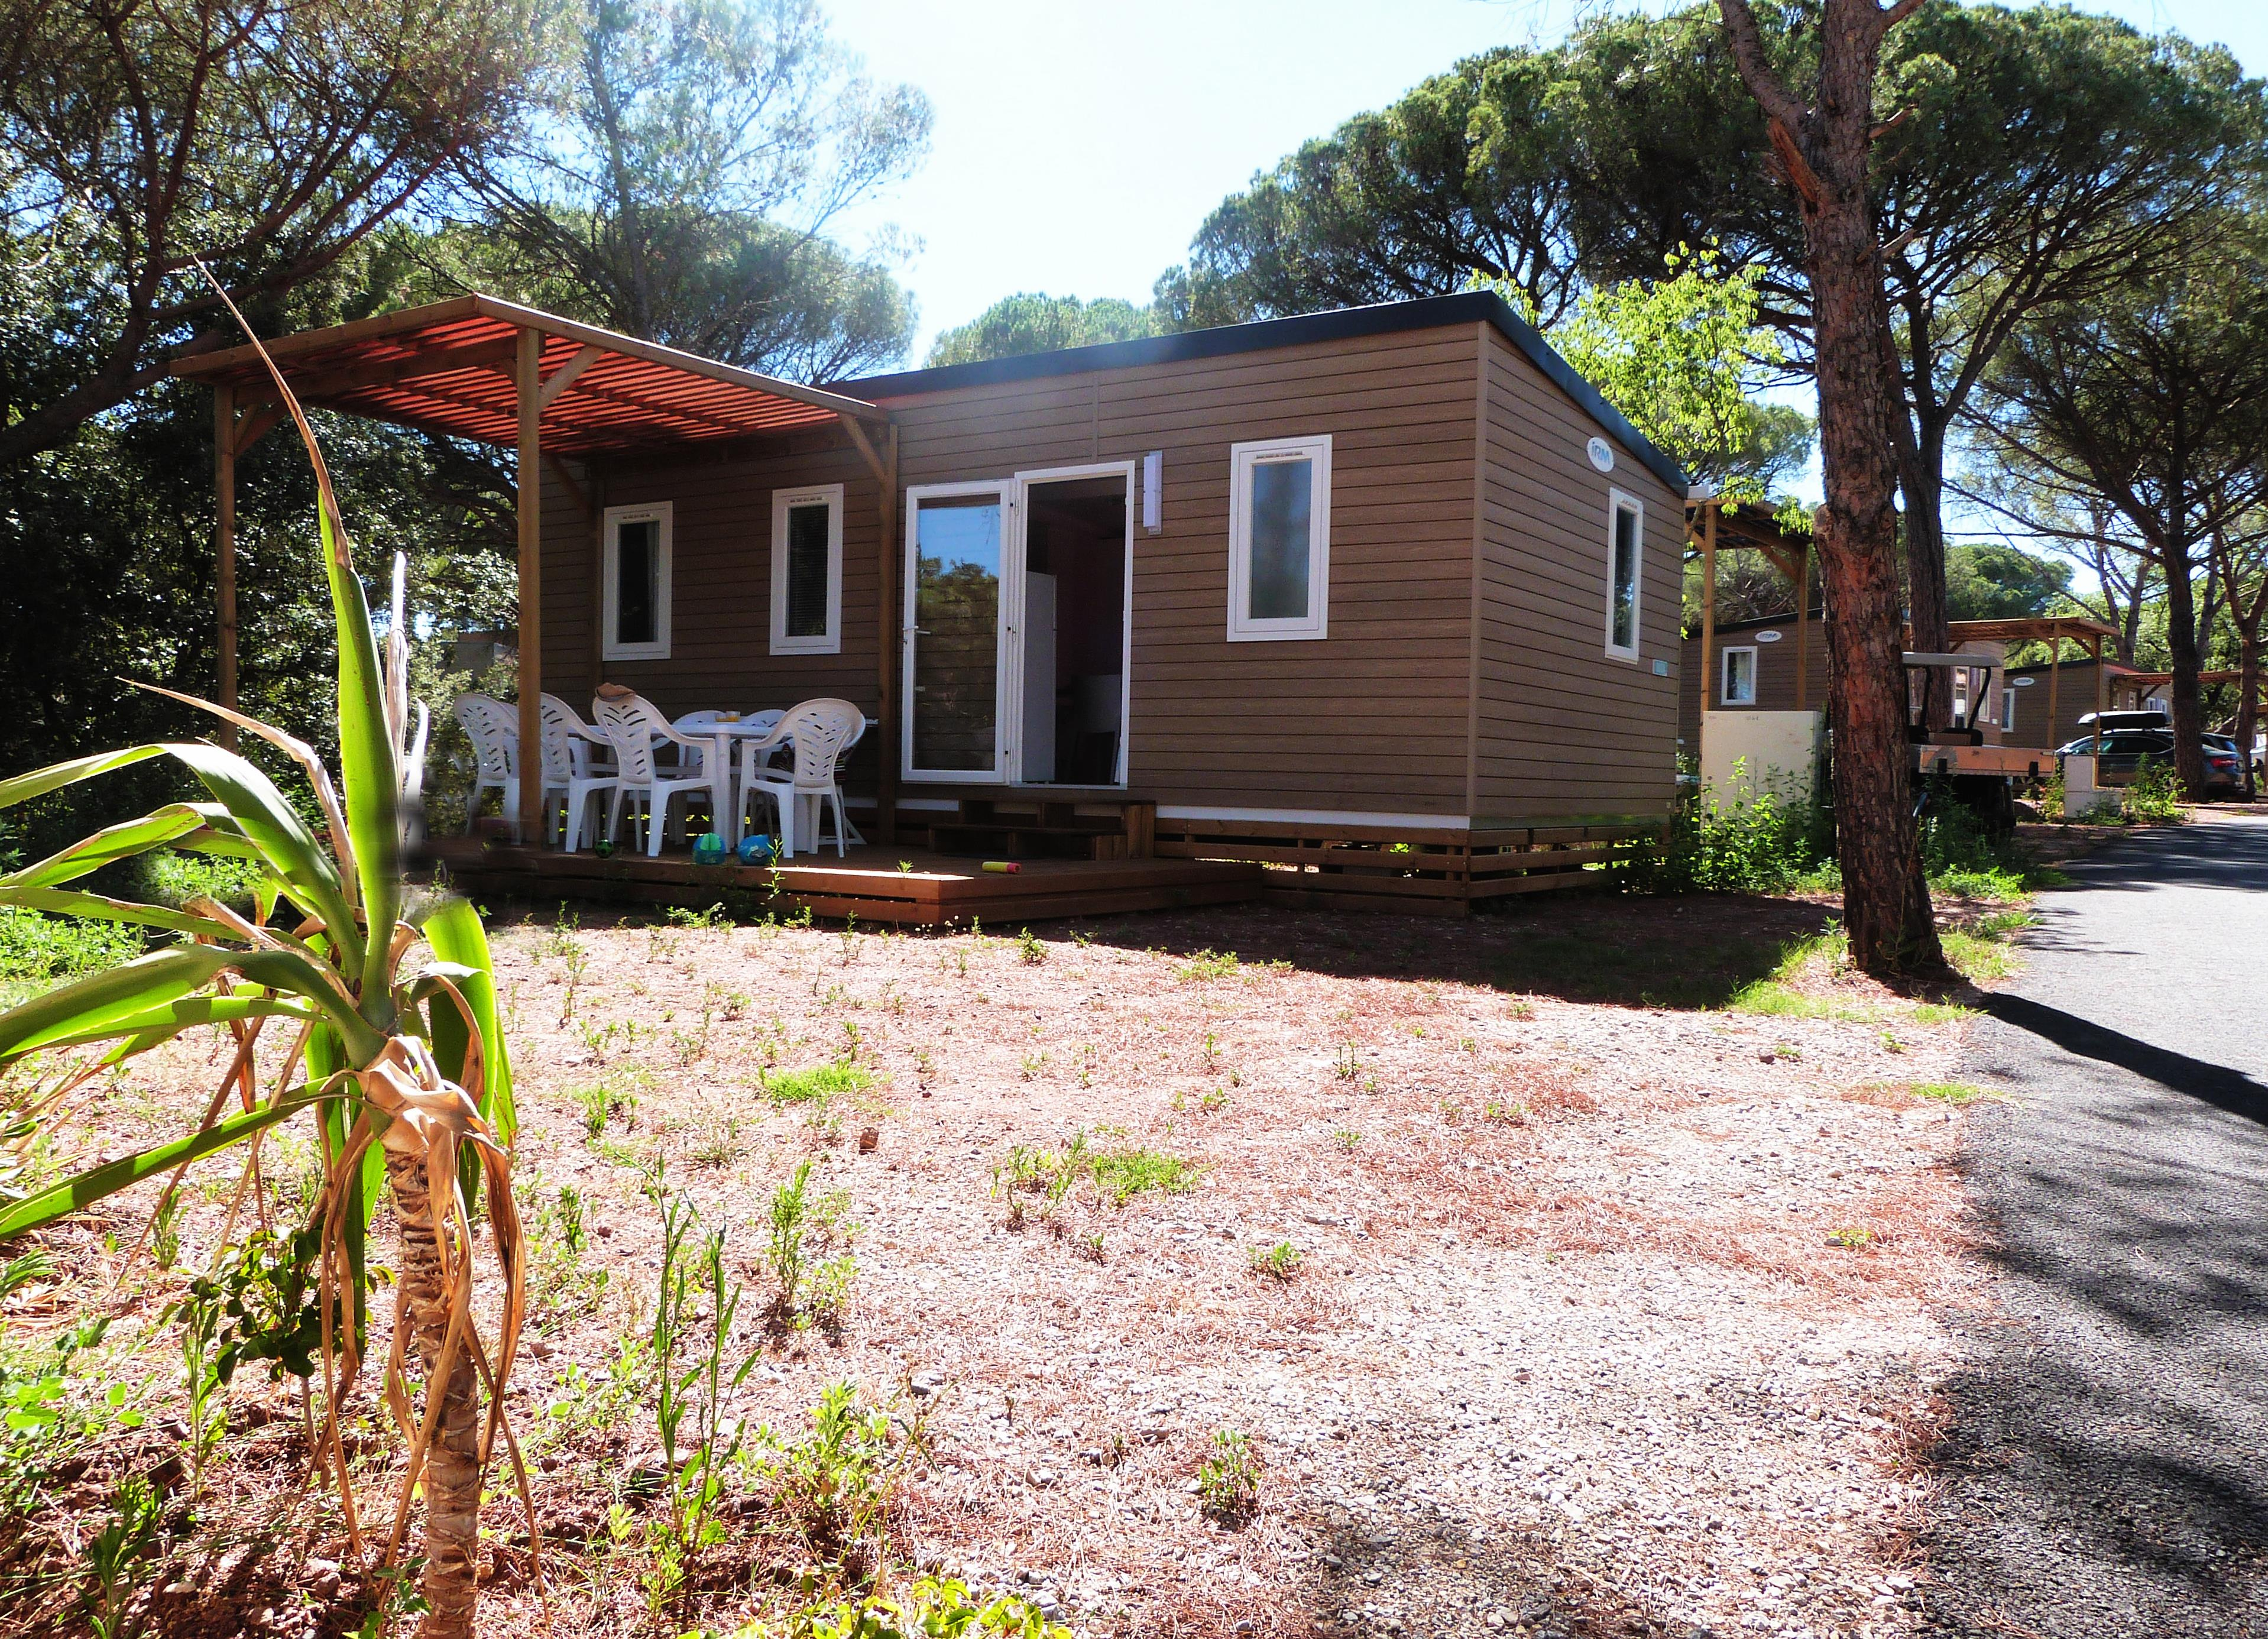 Locatifs - Nevada 8 Pers. + 2 Places Véhicules Eco. - Camping Les Cigales